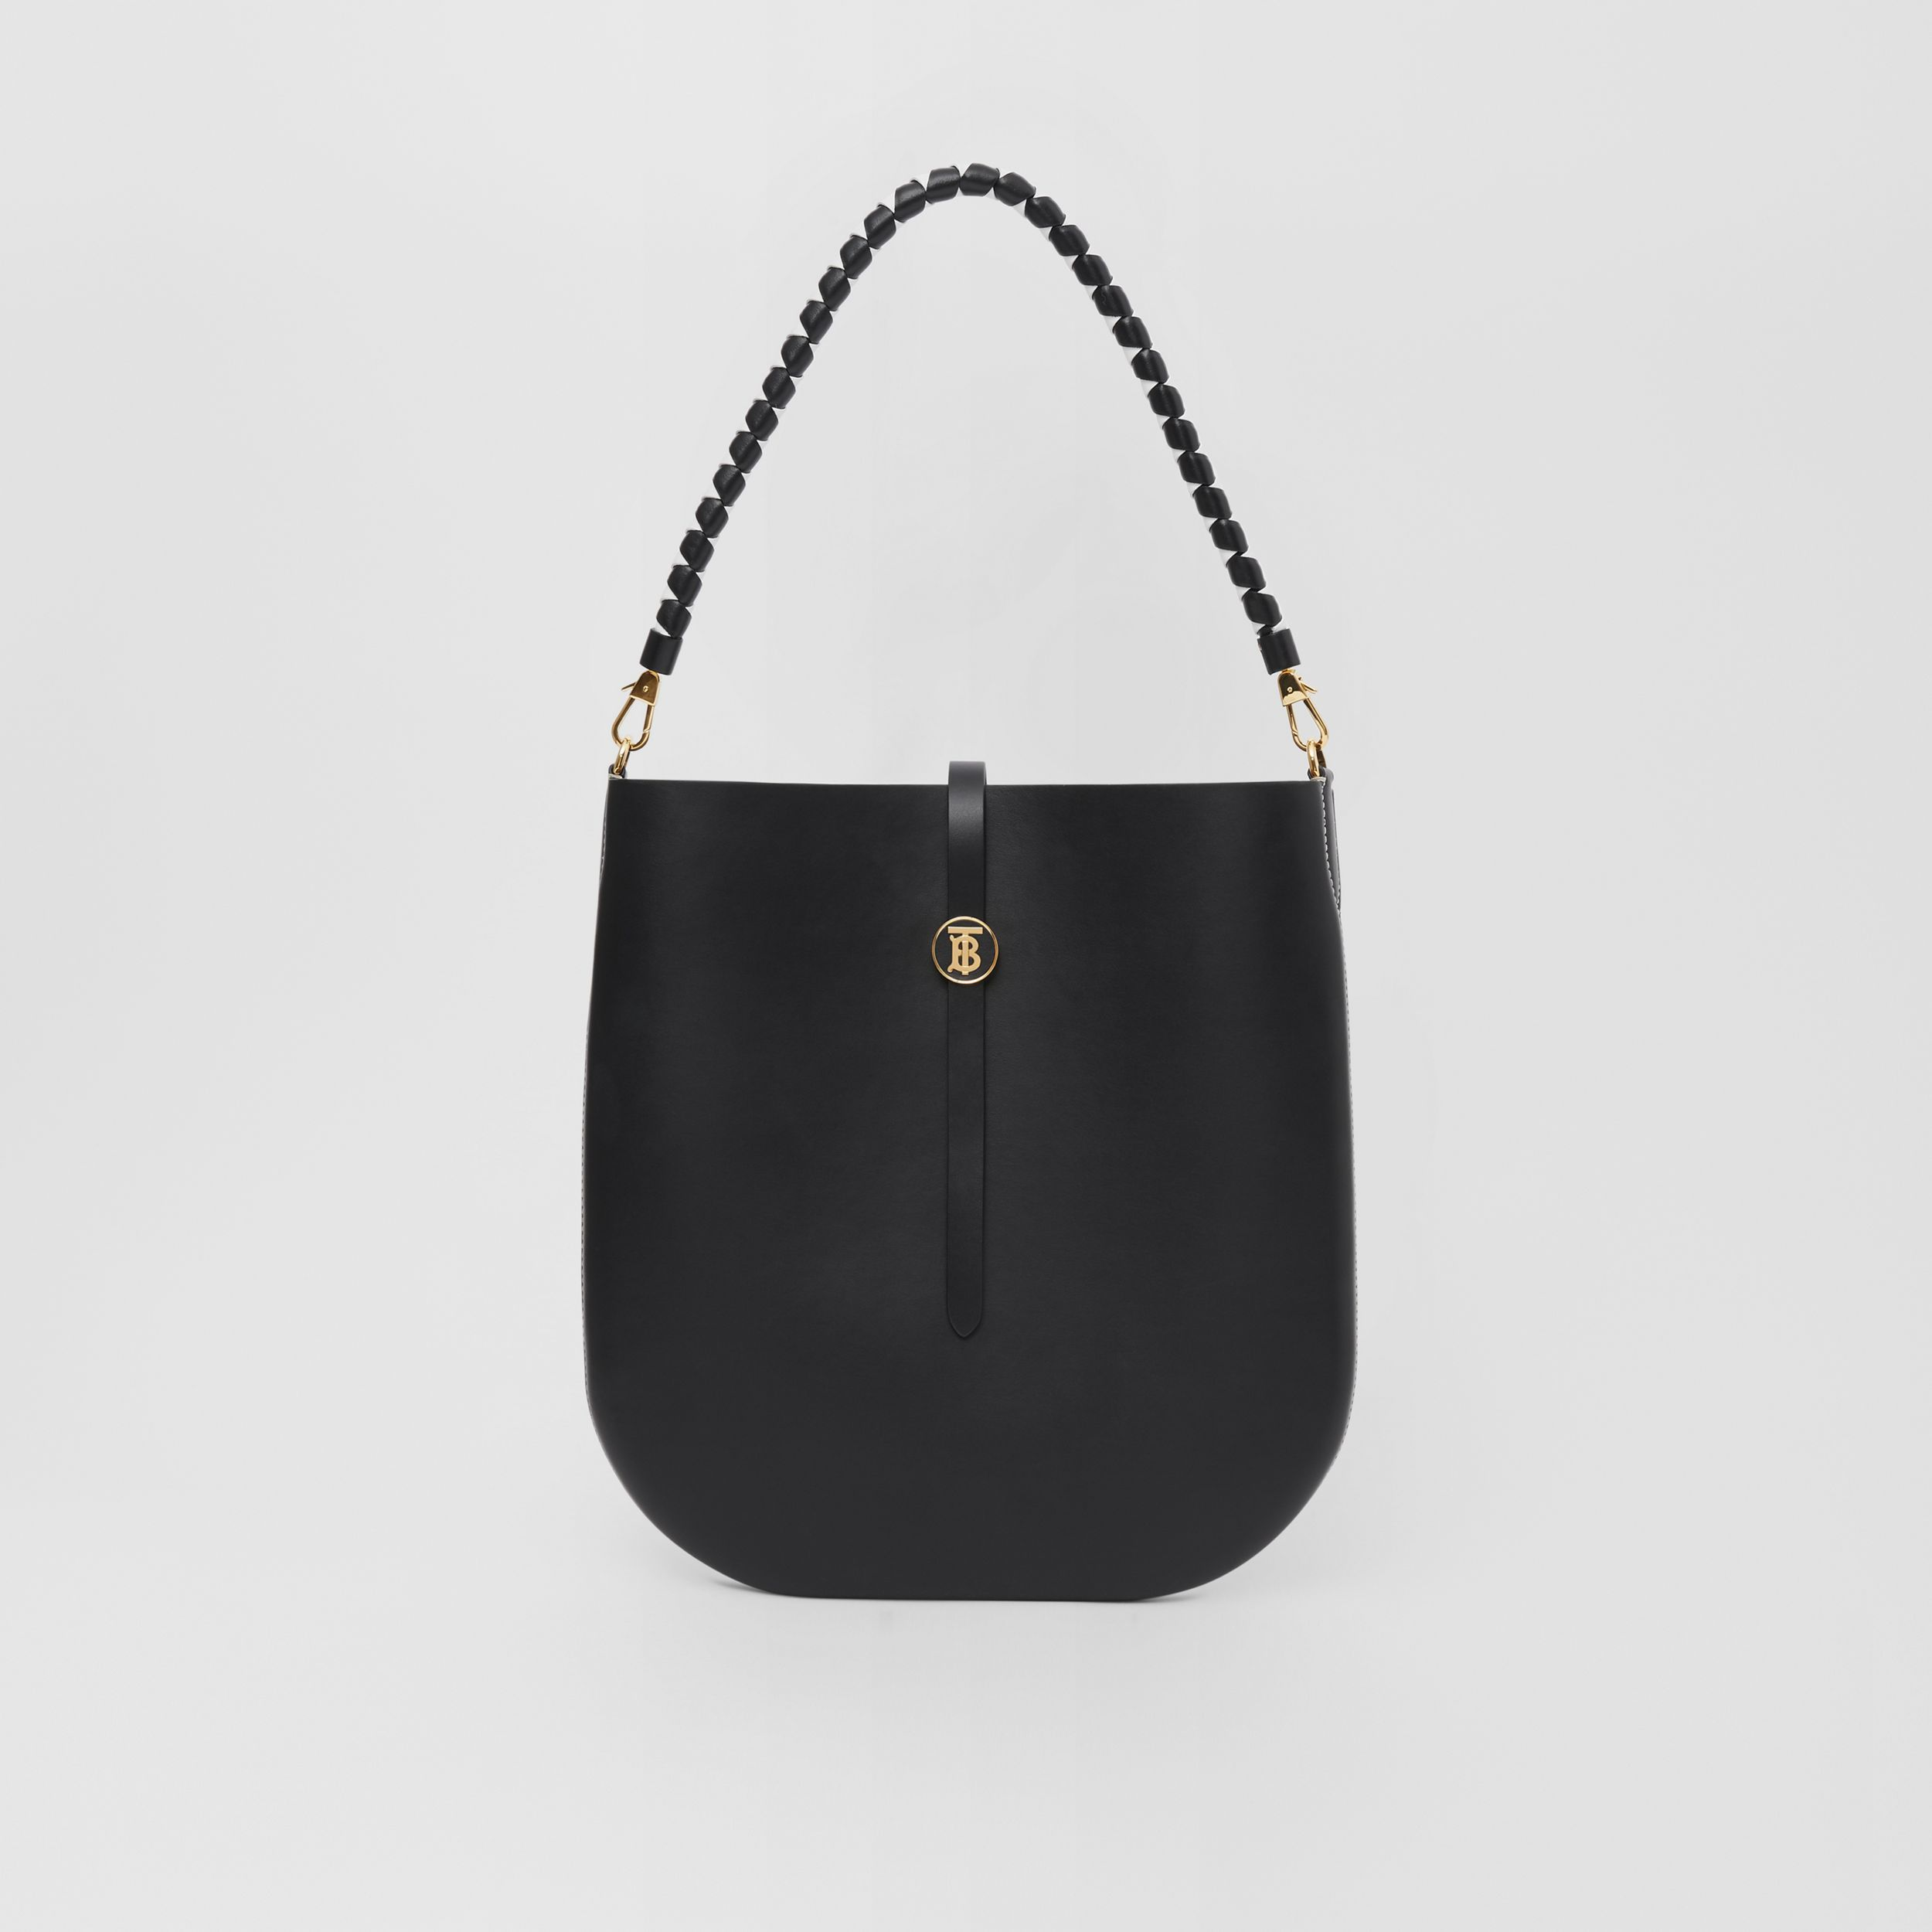 Leather Anne Bag in Black - Women | Burberry Australia - 1